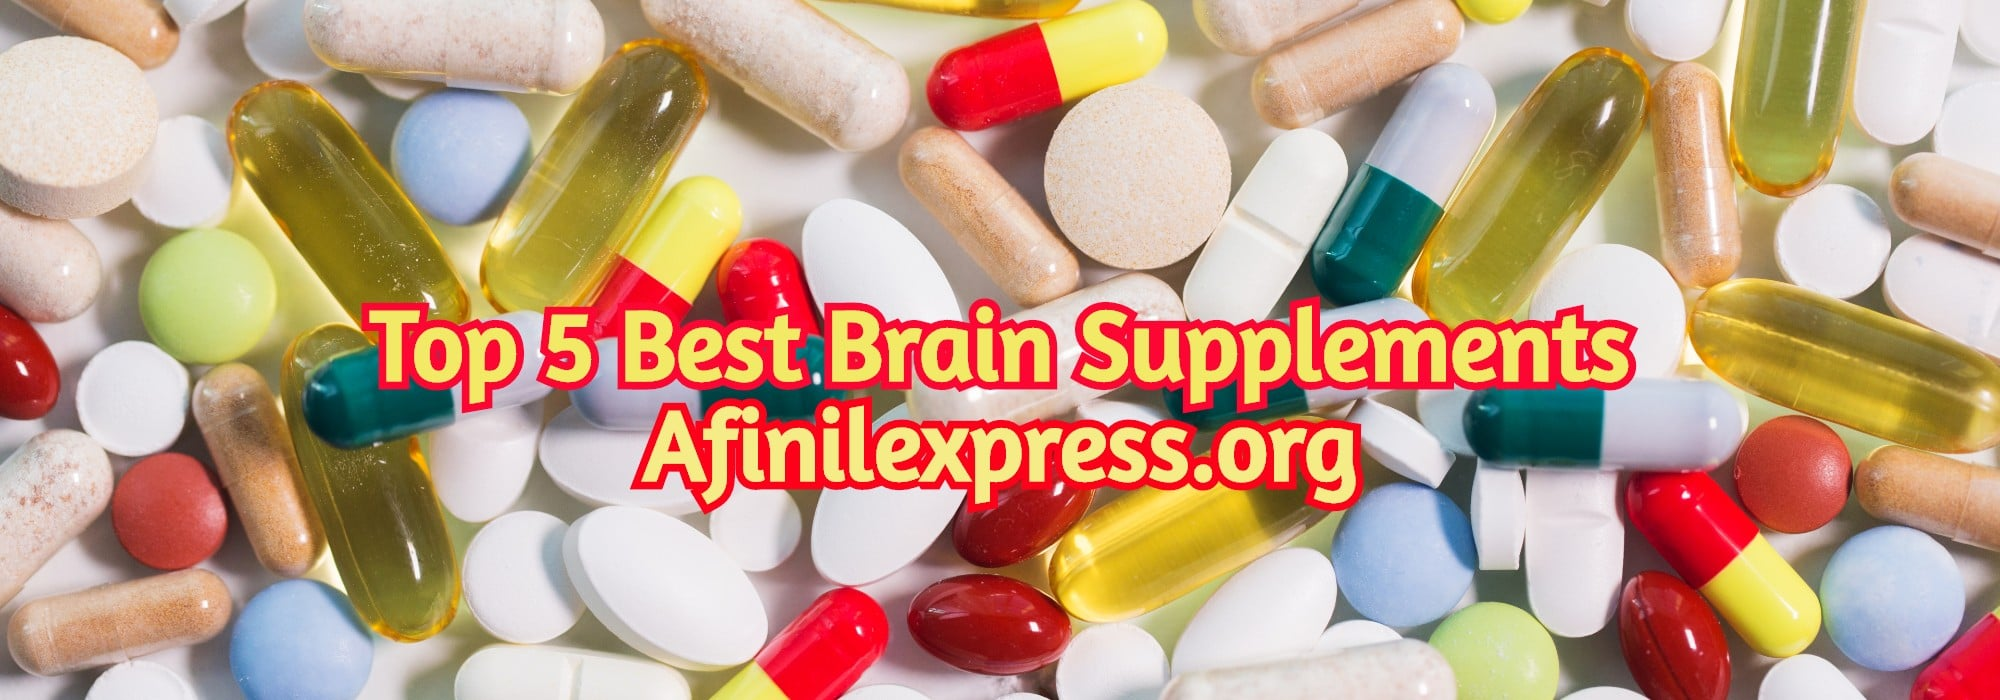 Top 5 Best Brain Supplements, afinilexpress.org